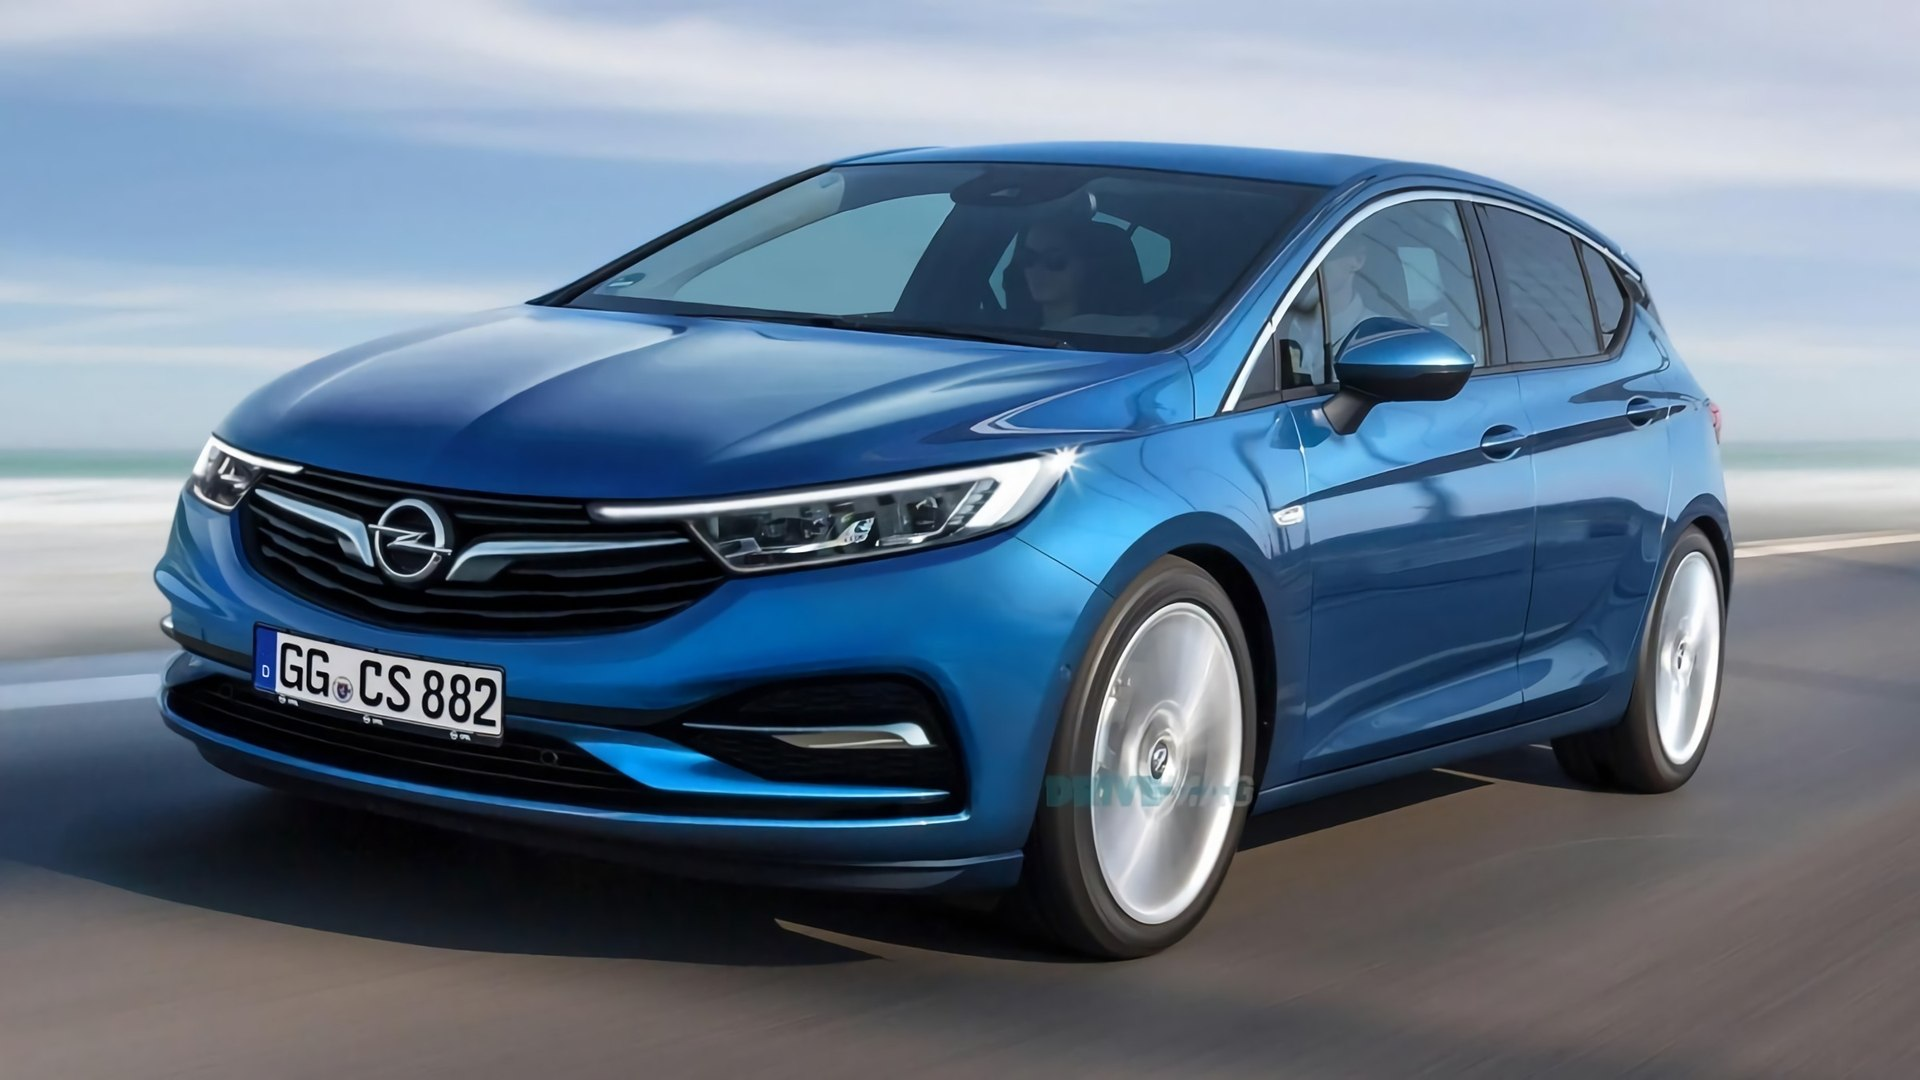 Opel Astra 2021: First Look & Photos की तस्वीर